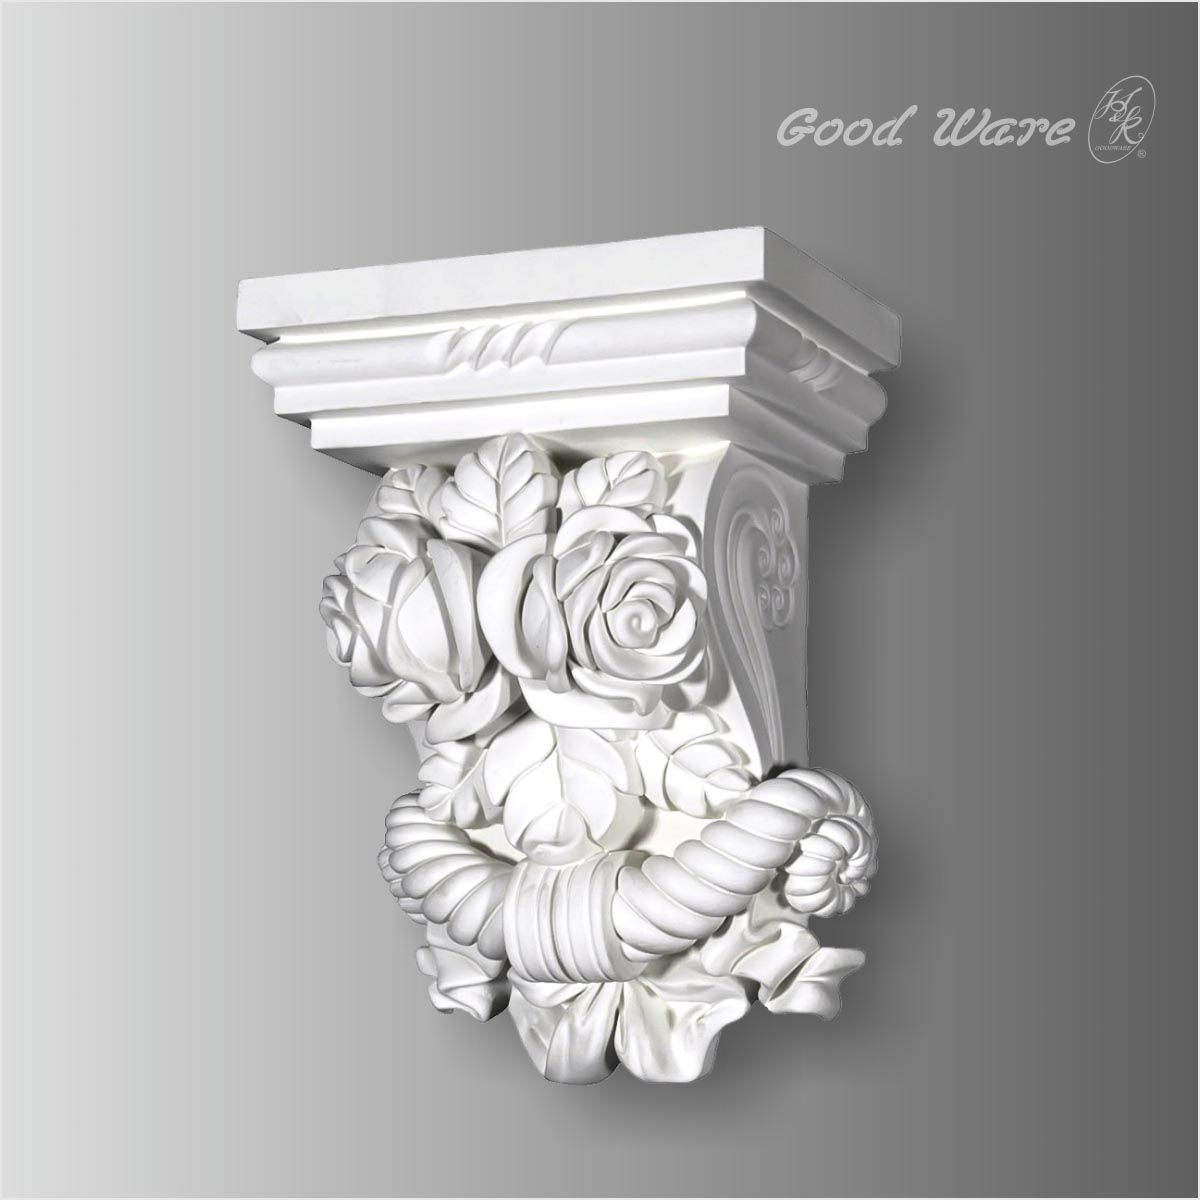 Incredible Polyurethane Rose Ornate Corbels Sale Perth Corbels Sale Decorative Corbels By Goodware Polyurethane Rose Ornate Corbels Sale Decorative Corbels By Corbels Sale Lowes houzz-03 Corbels For Sale